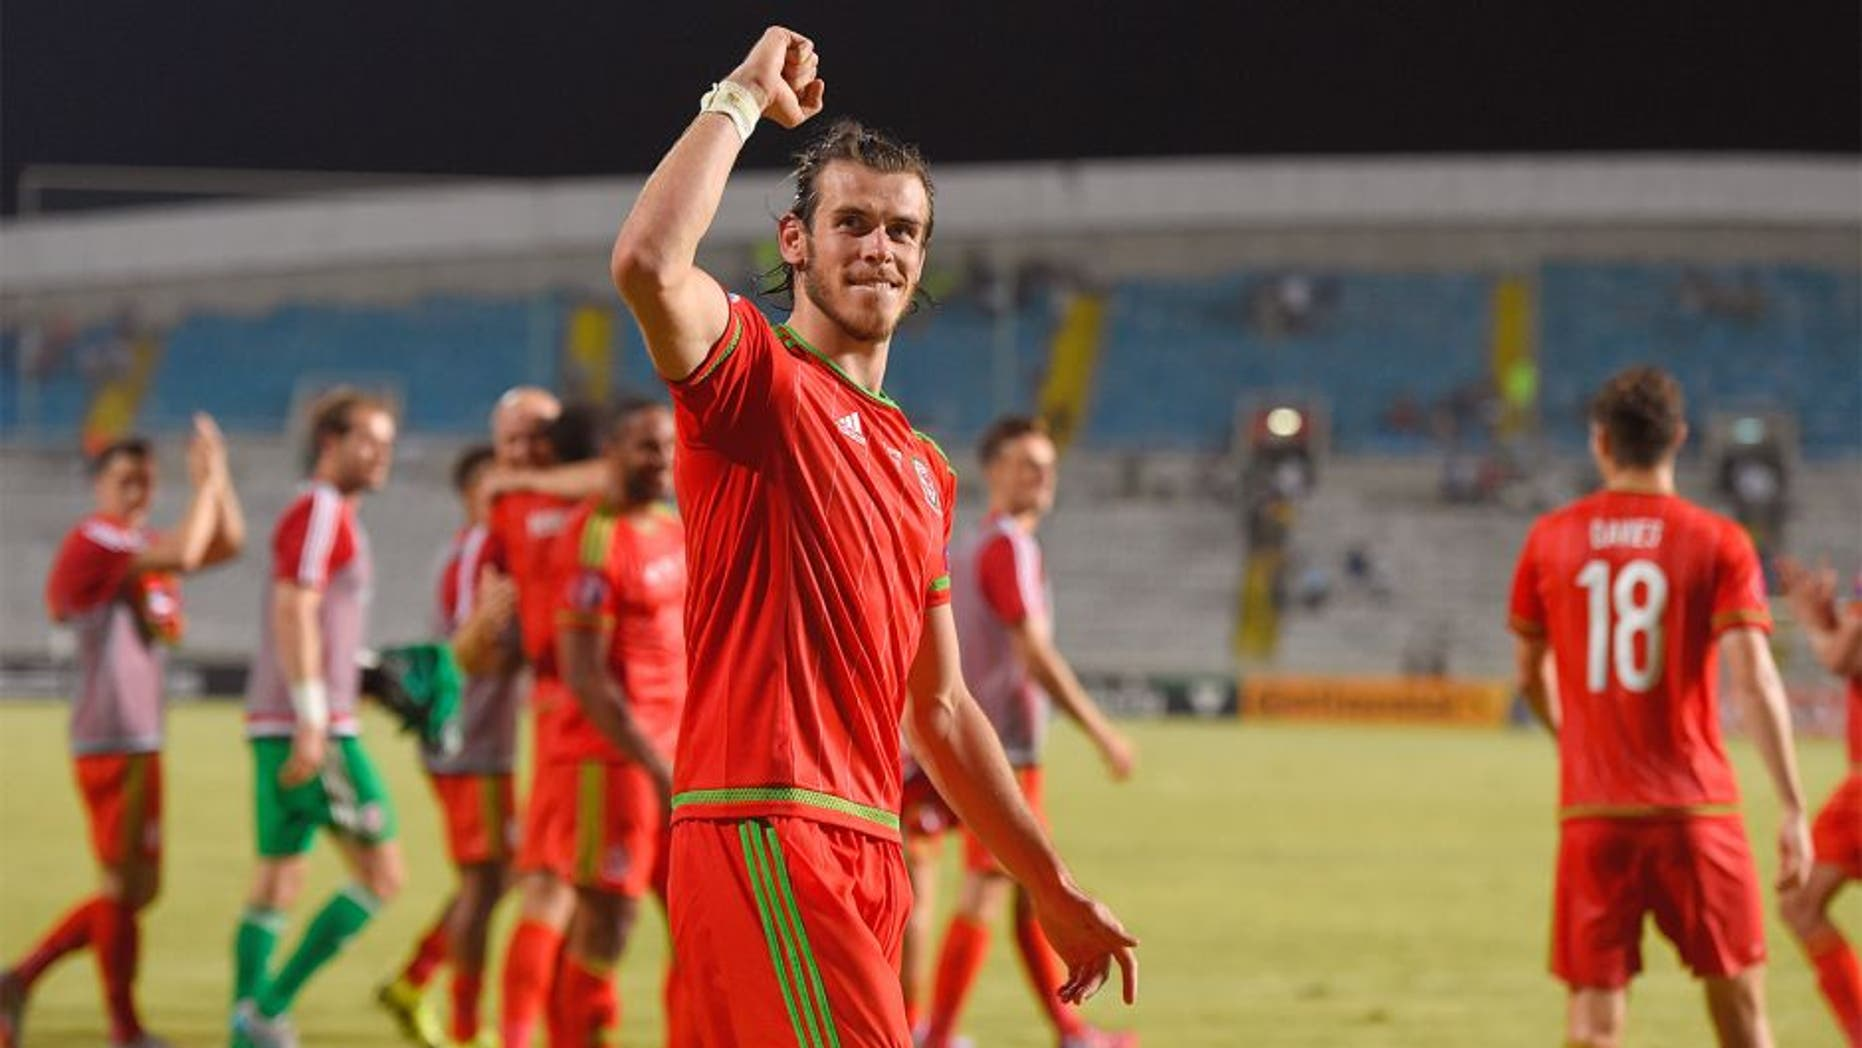 NICOSIA, CYPRUS - SEPTEMBER 03: Wales striker Gareth Bale celebrates after the UEFA EURO 2016 Qualifier between Cyprus and Wales at GPS Stadium on September 3, 2015 in Nicosia, Cyprus. (Photo by Stu Forster/Getty Images)